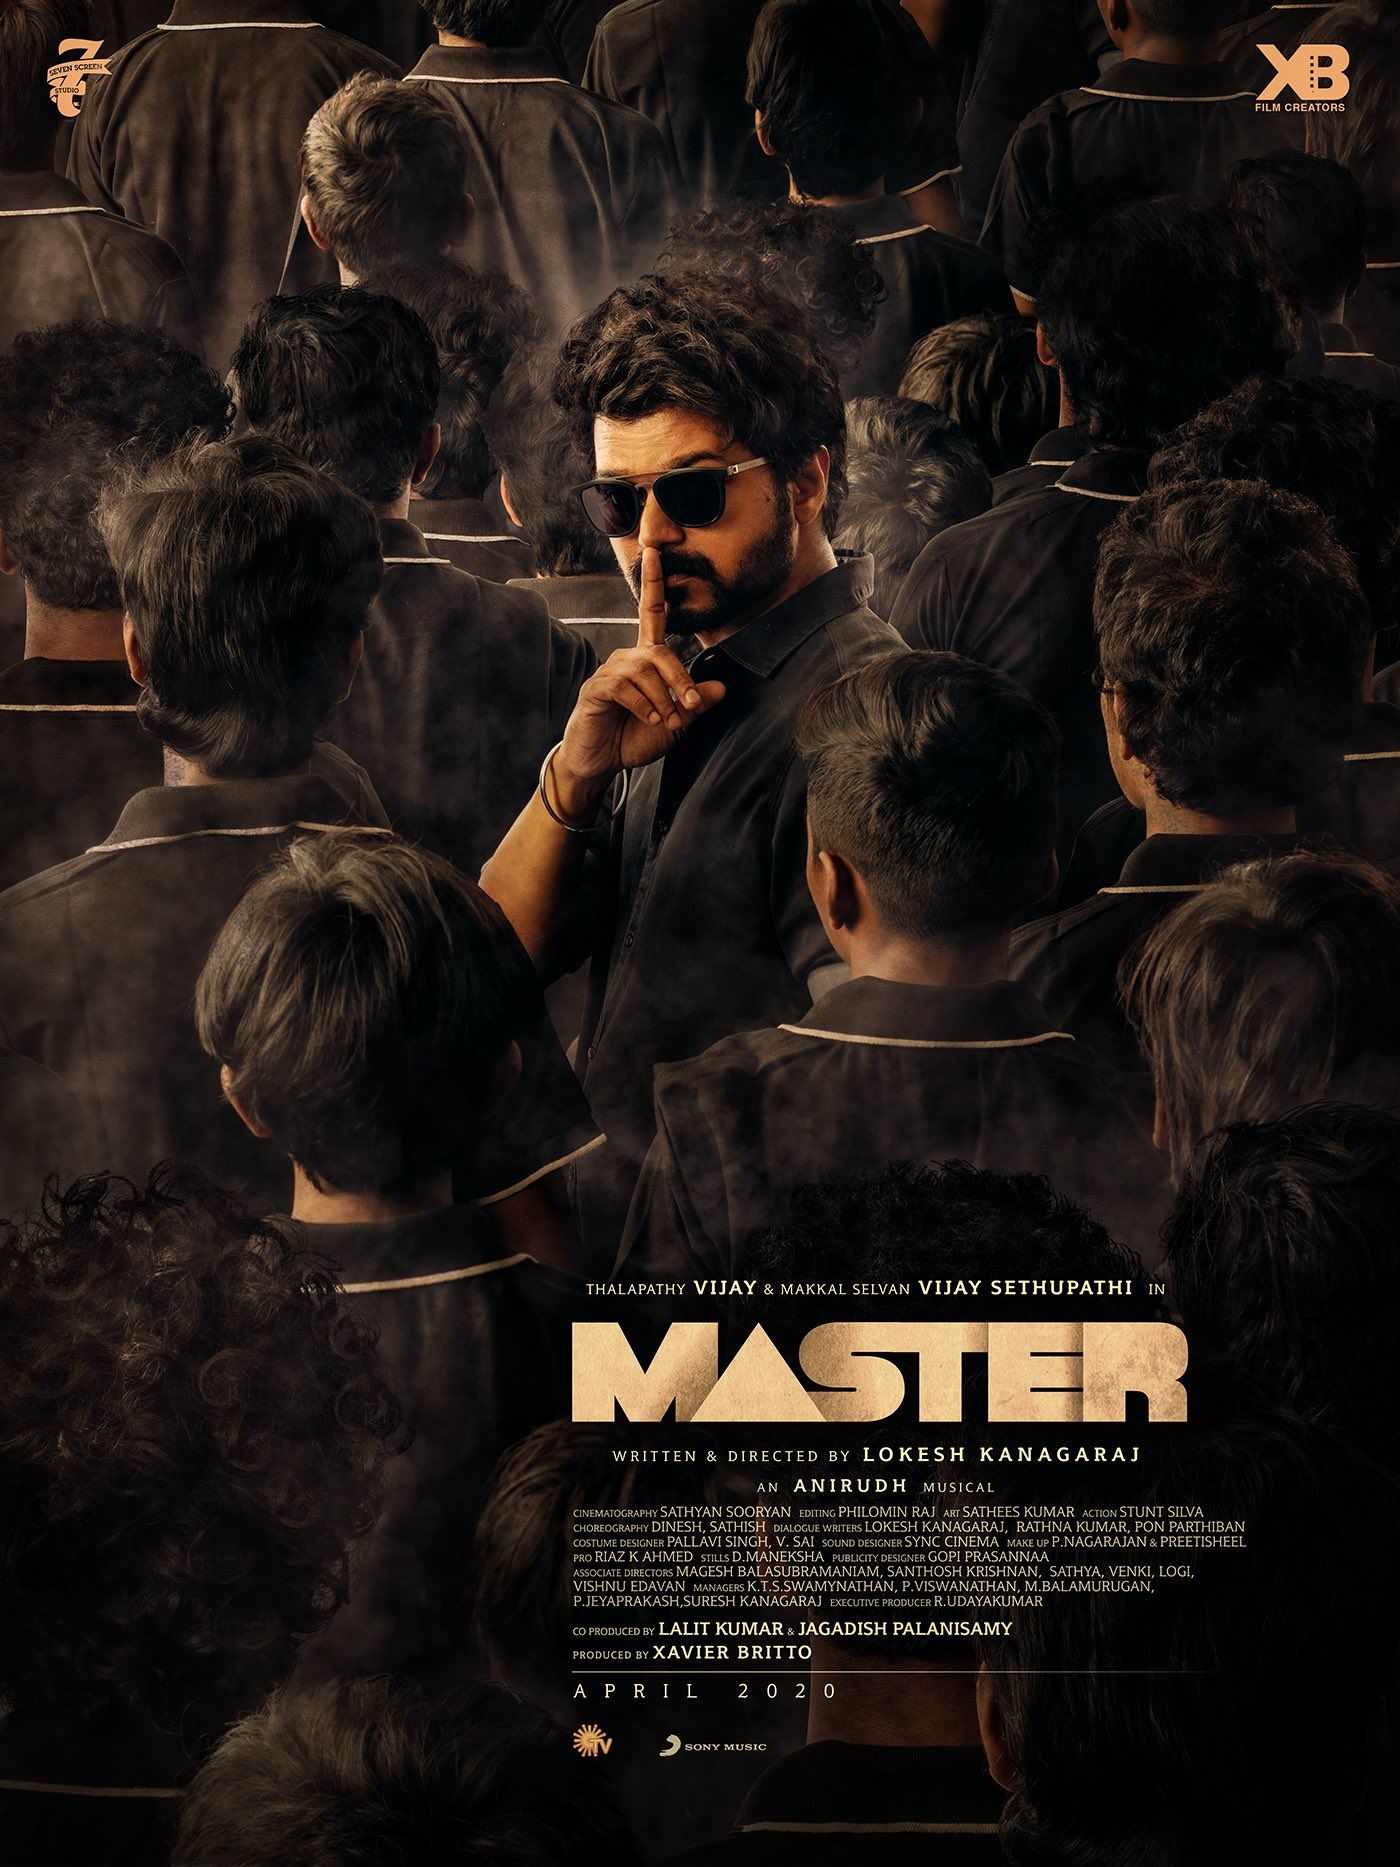 Most Awaited Second Look Of Master Starring Thalapathy Vijay Is Here In 2020 New Poster Vijay Actor Tamil Movies